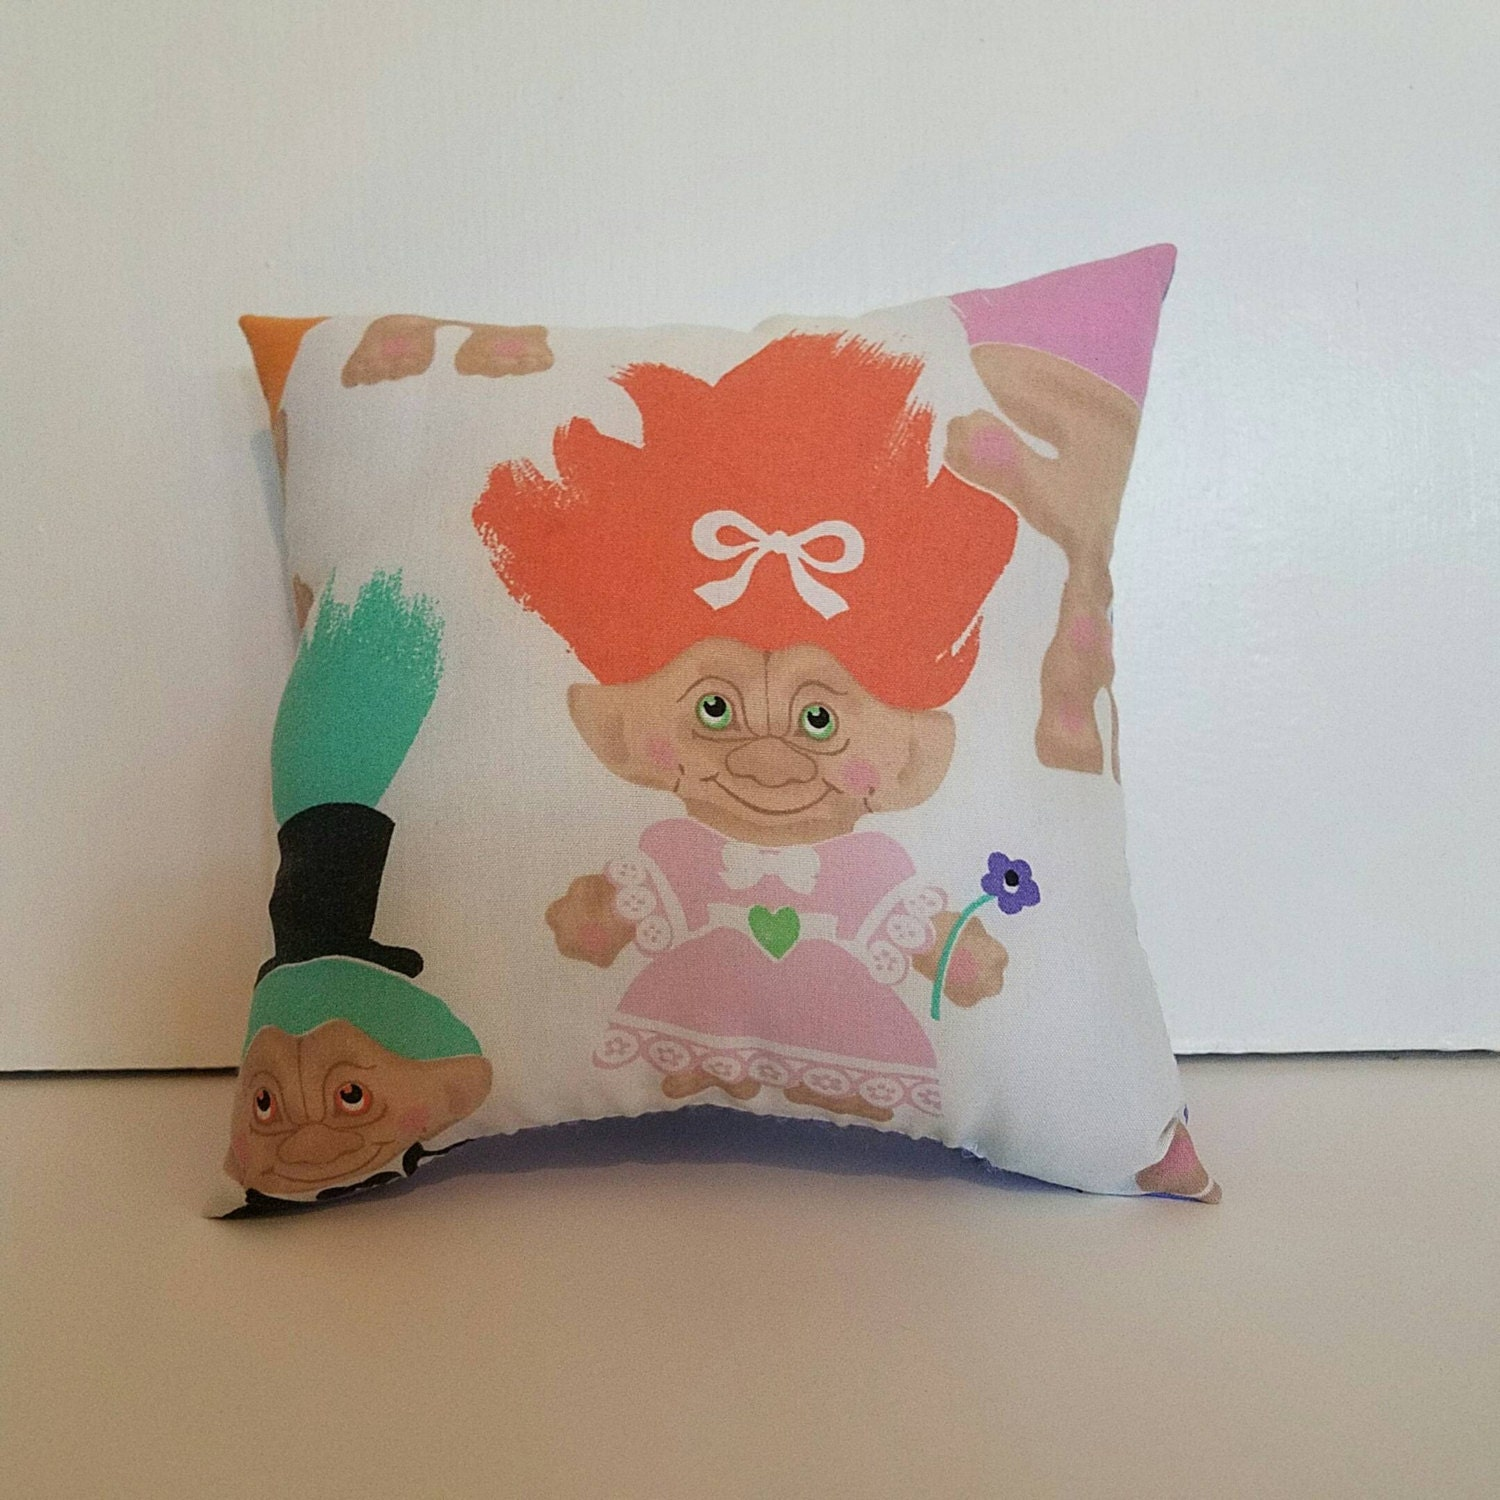 Troll Doll Decorative Pillow